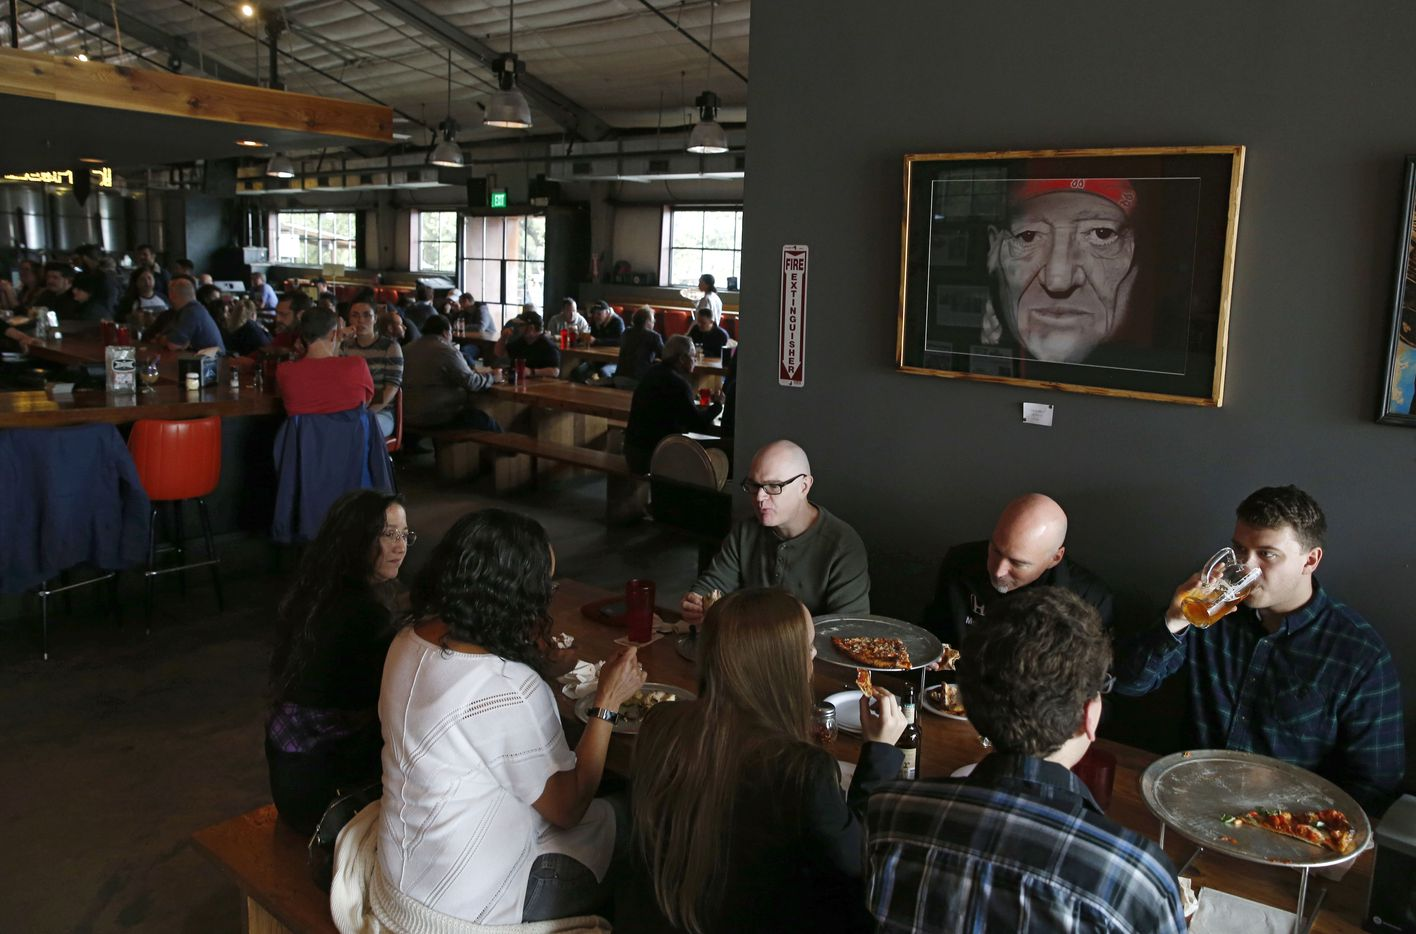 Jared Holeyfield (right) takes a sip of beer next to Darrell Caldwell (center) and Ernest Adams as they share a meal at the Austin Beer Garden Brewing Company in Austin.